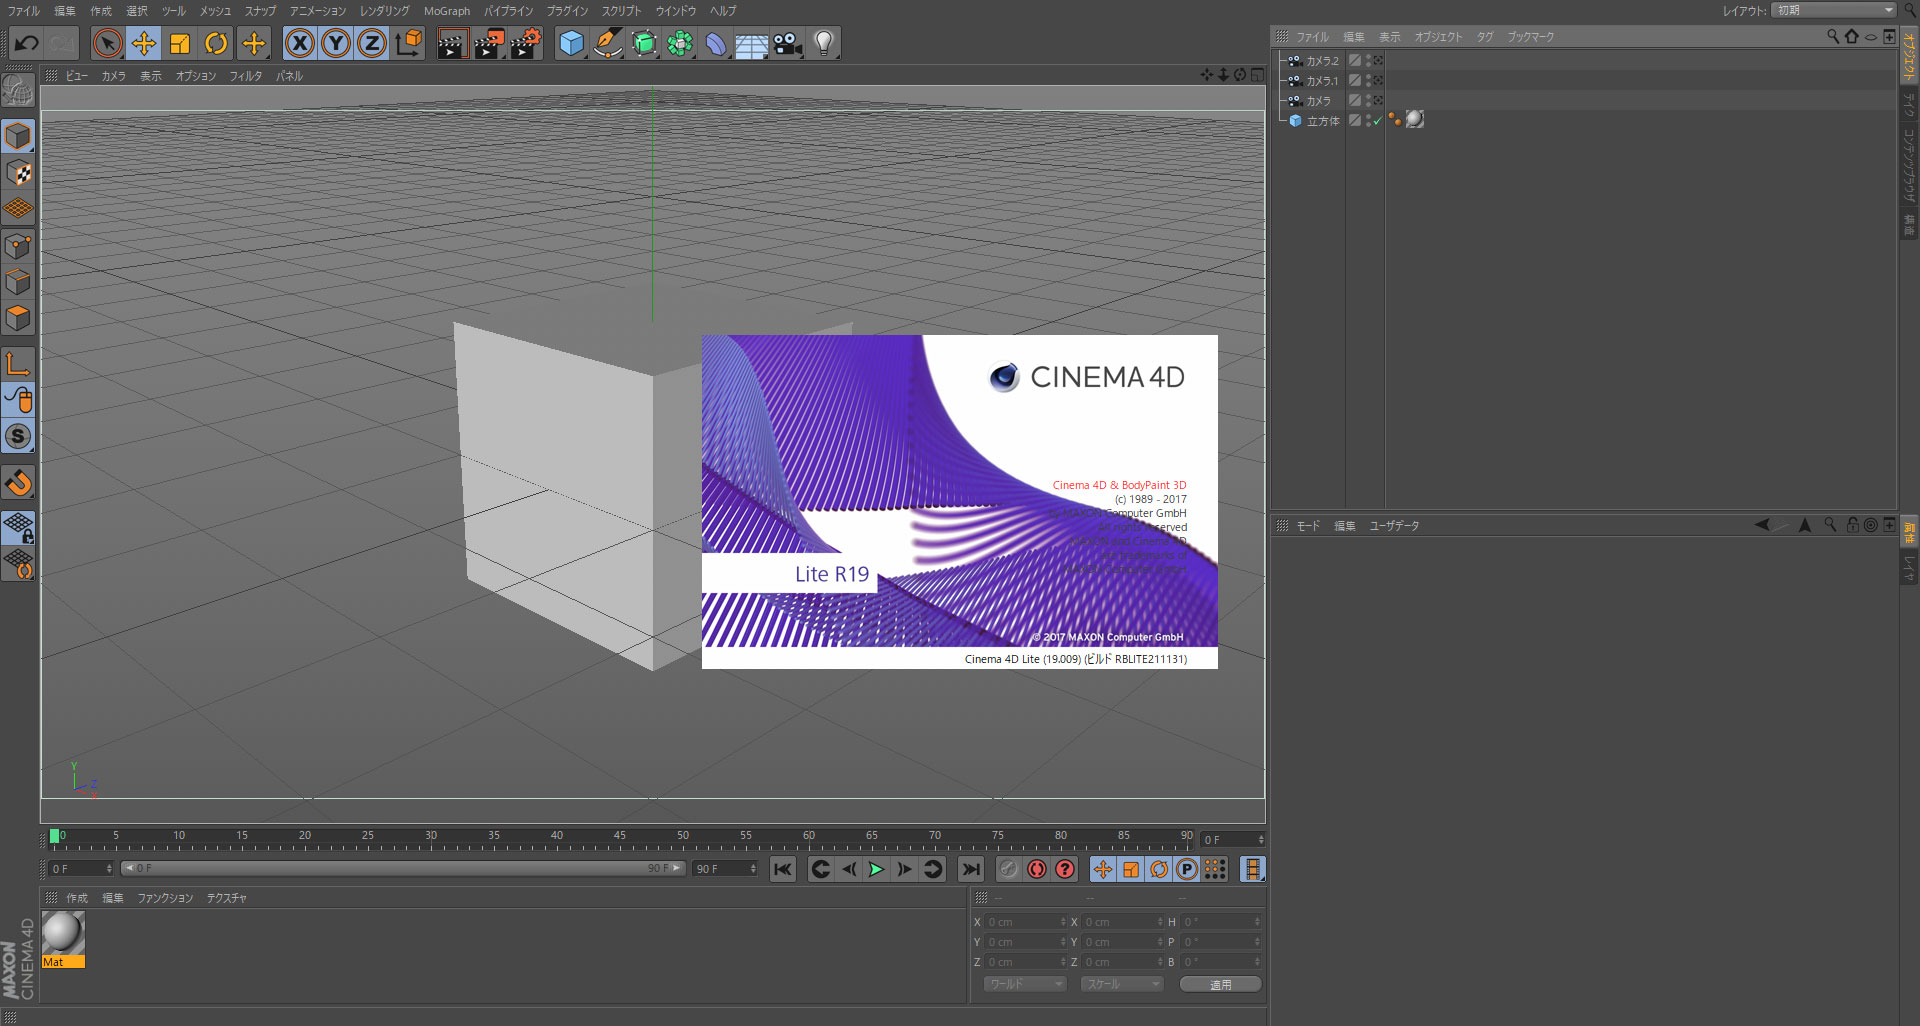 CINEMA 4D Lite R19